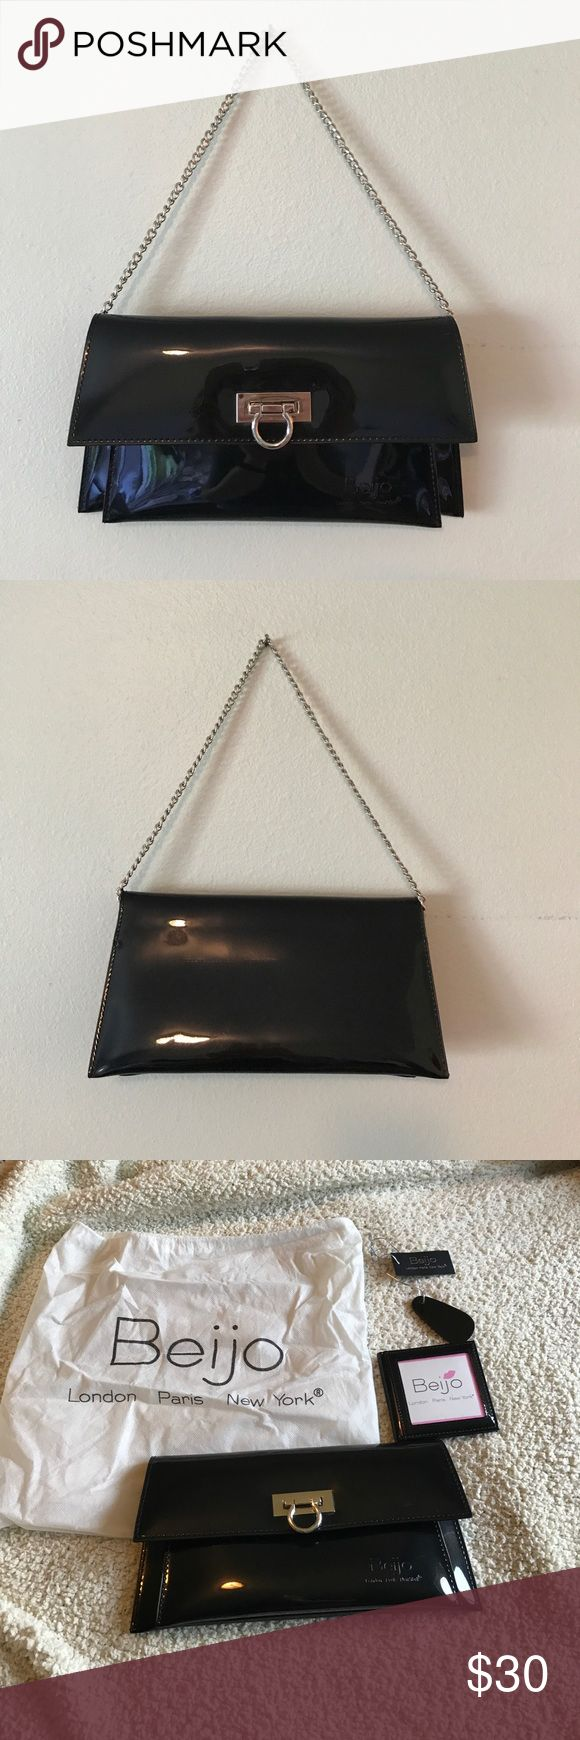 Beijo handbag/clutch Beijo handbag/clutch. This purse can be use as a clutch or a shoulder bag. This bag is in like new condition with original dust cover, photo cards and tags. Beijo Bags Clutches & Wristlets